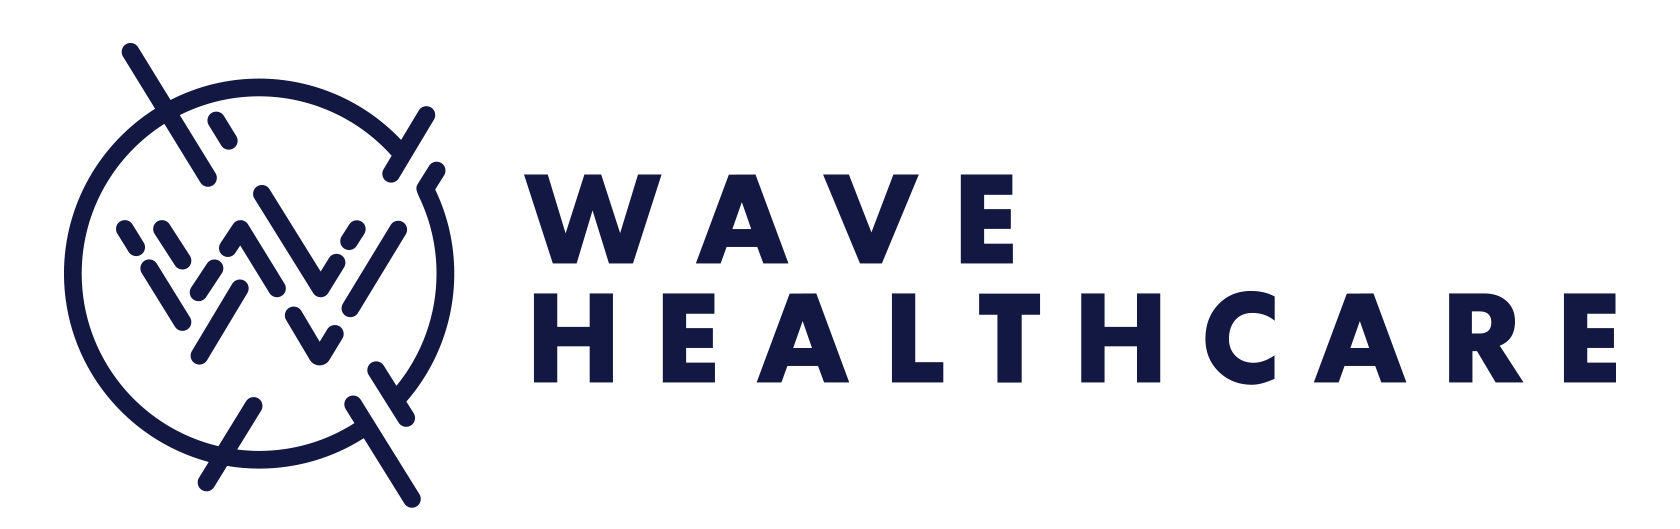 wave-healthcare-logos